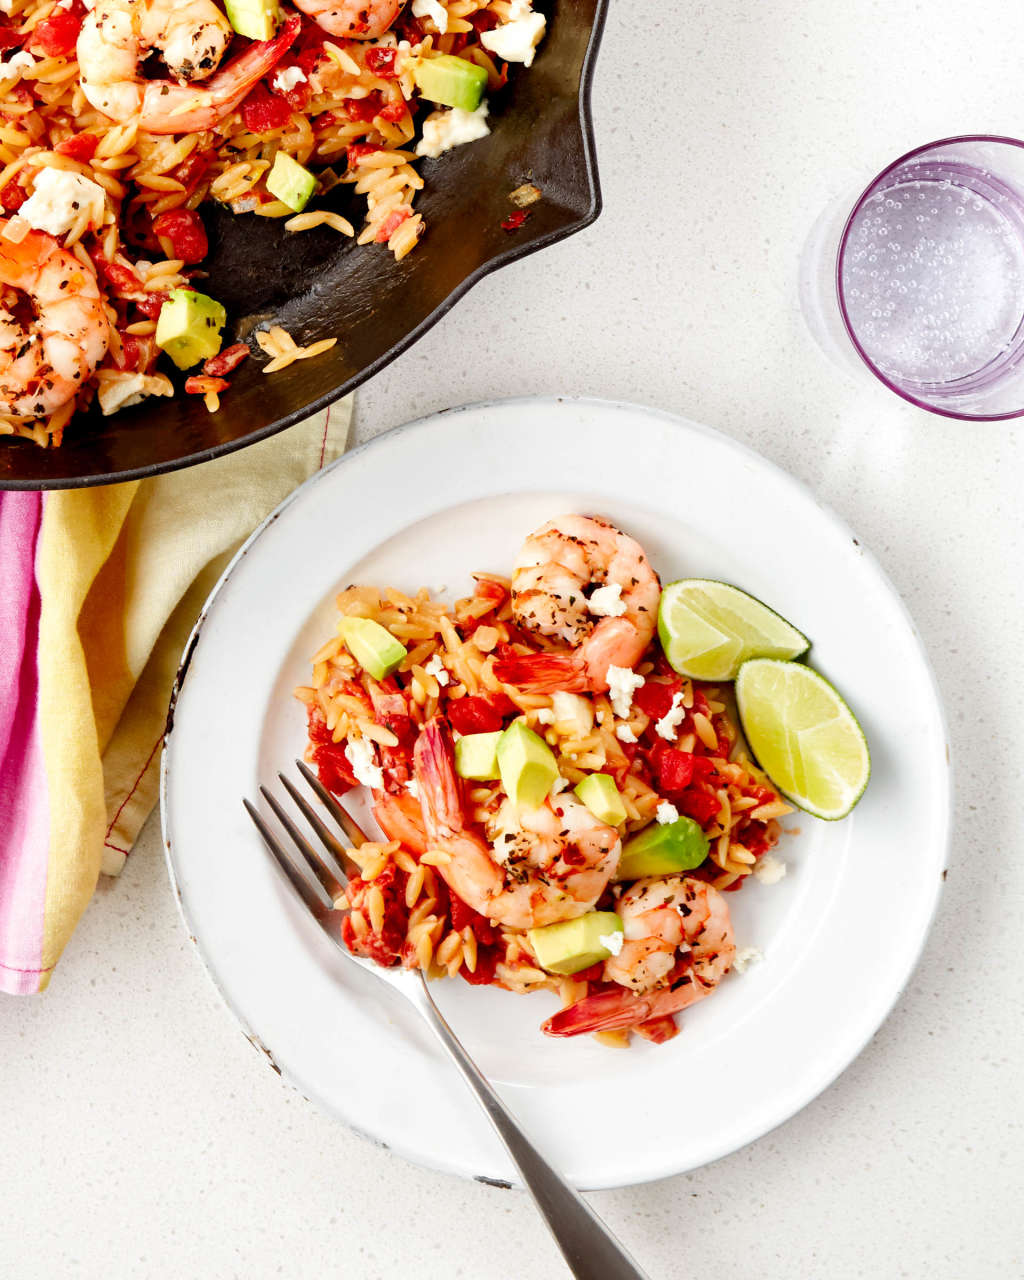 A Mexican Shrimp Orzo That Cooks Up in One Skillet